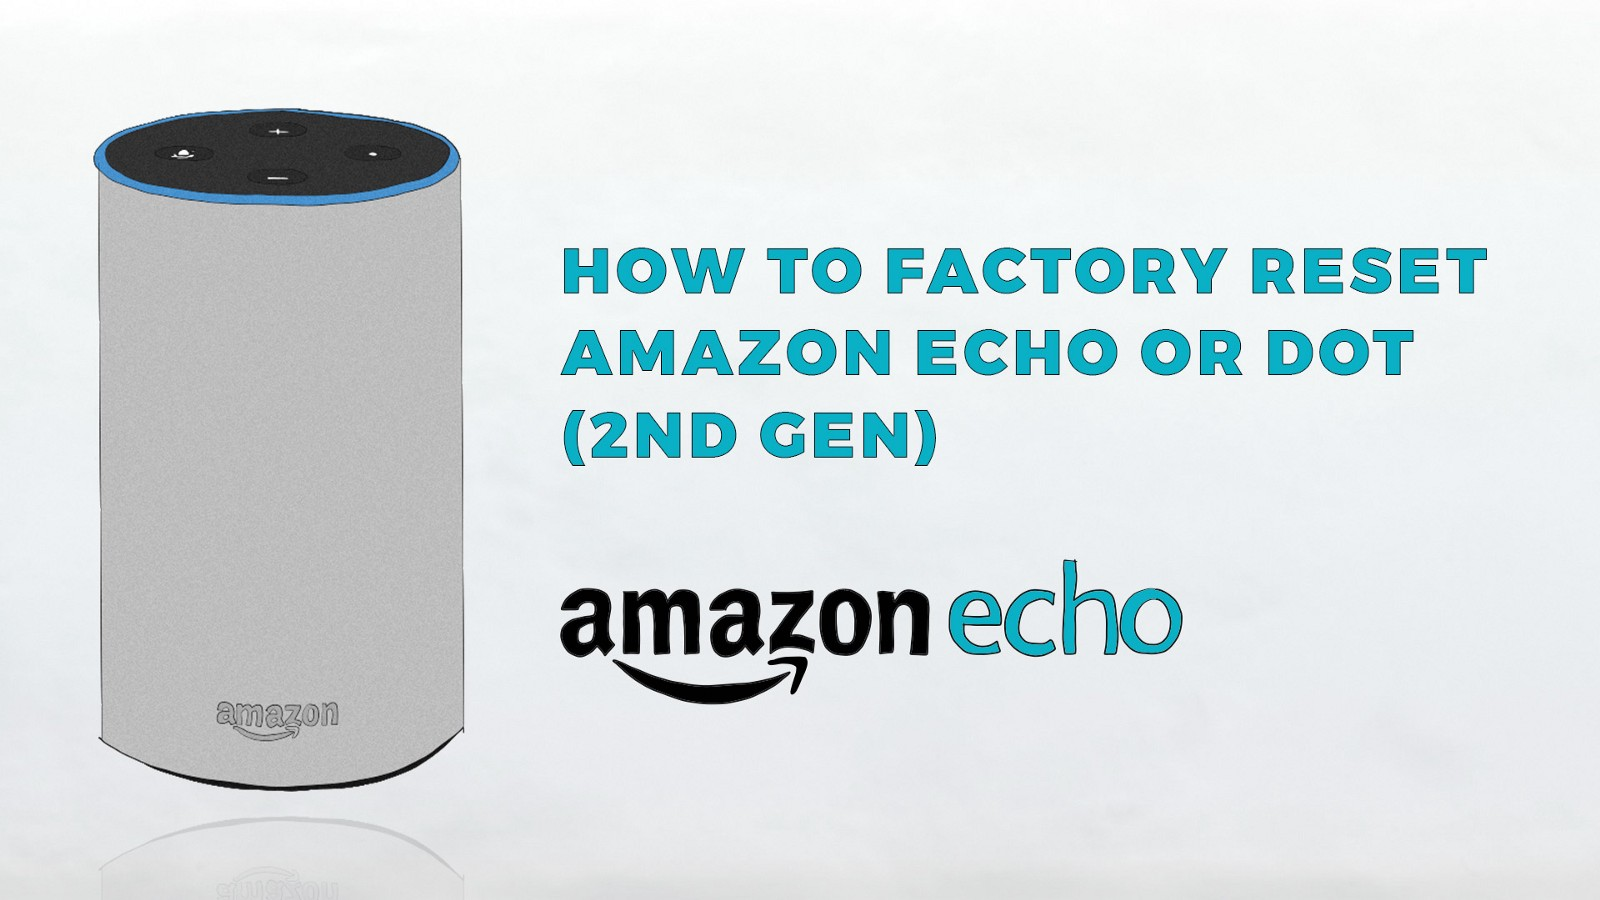 ???echo 195 How To Reset Amazon Echo Or Dot 2nd To Factory Defaults